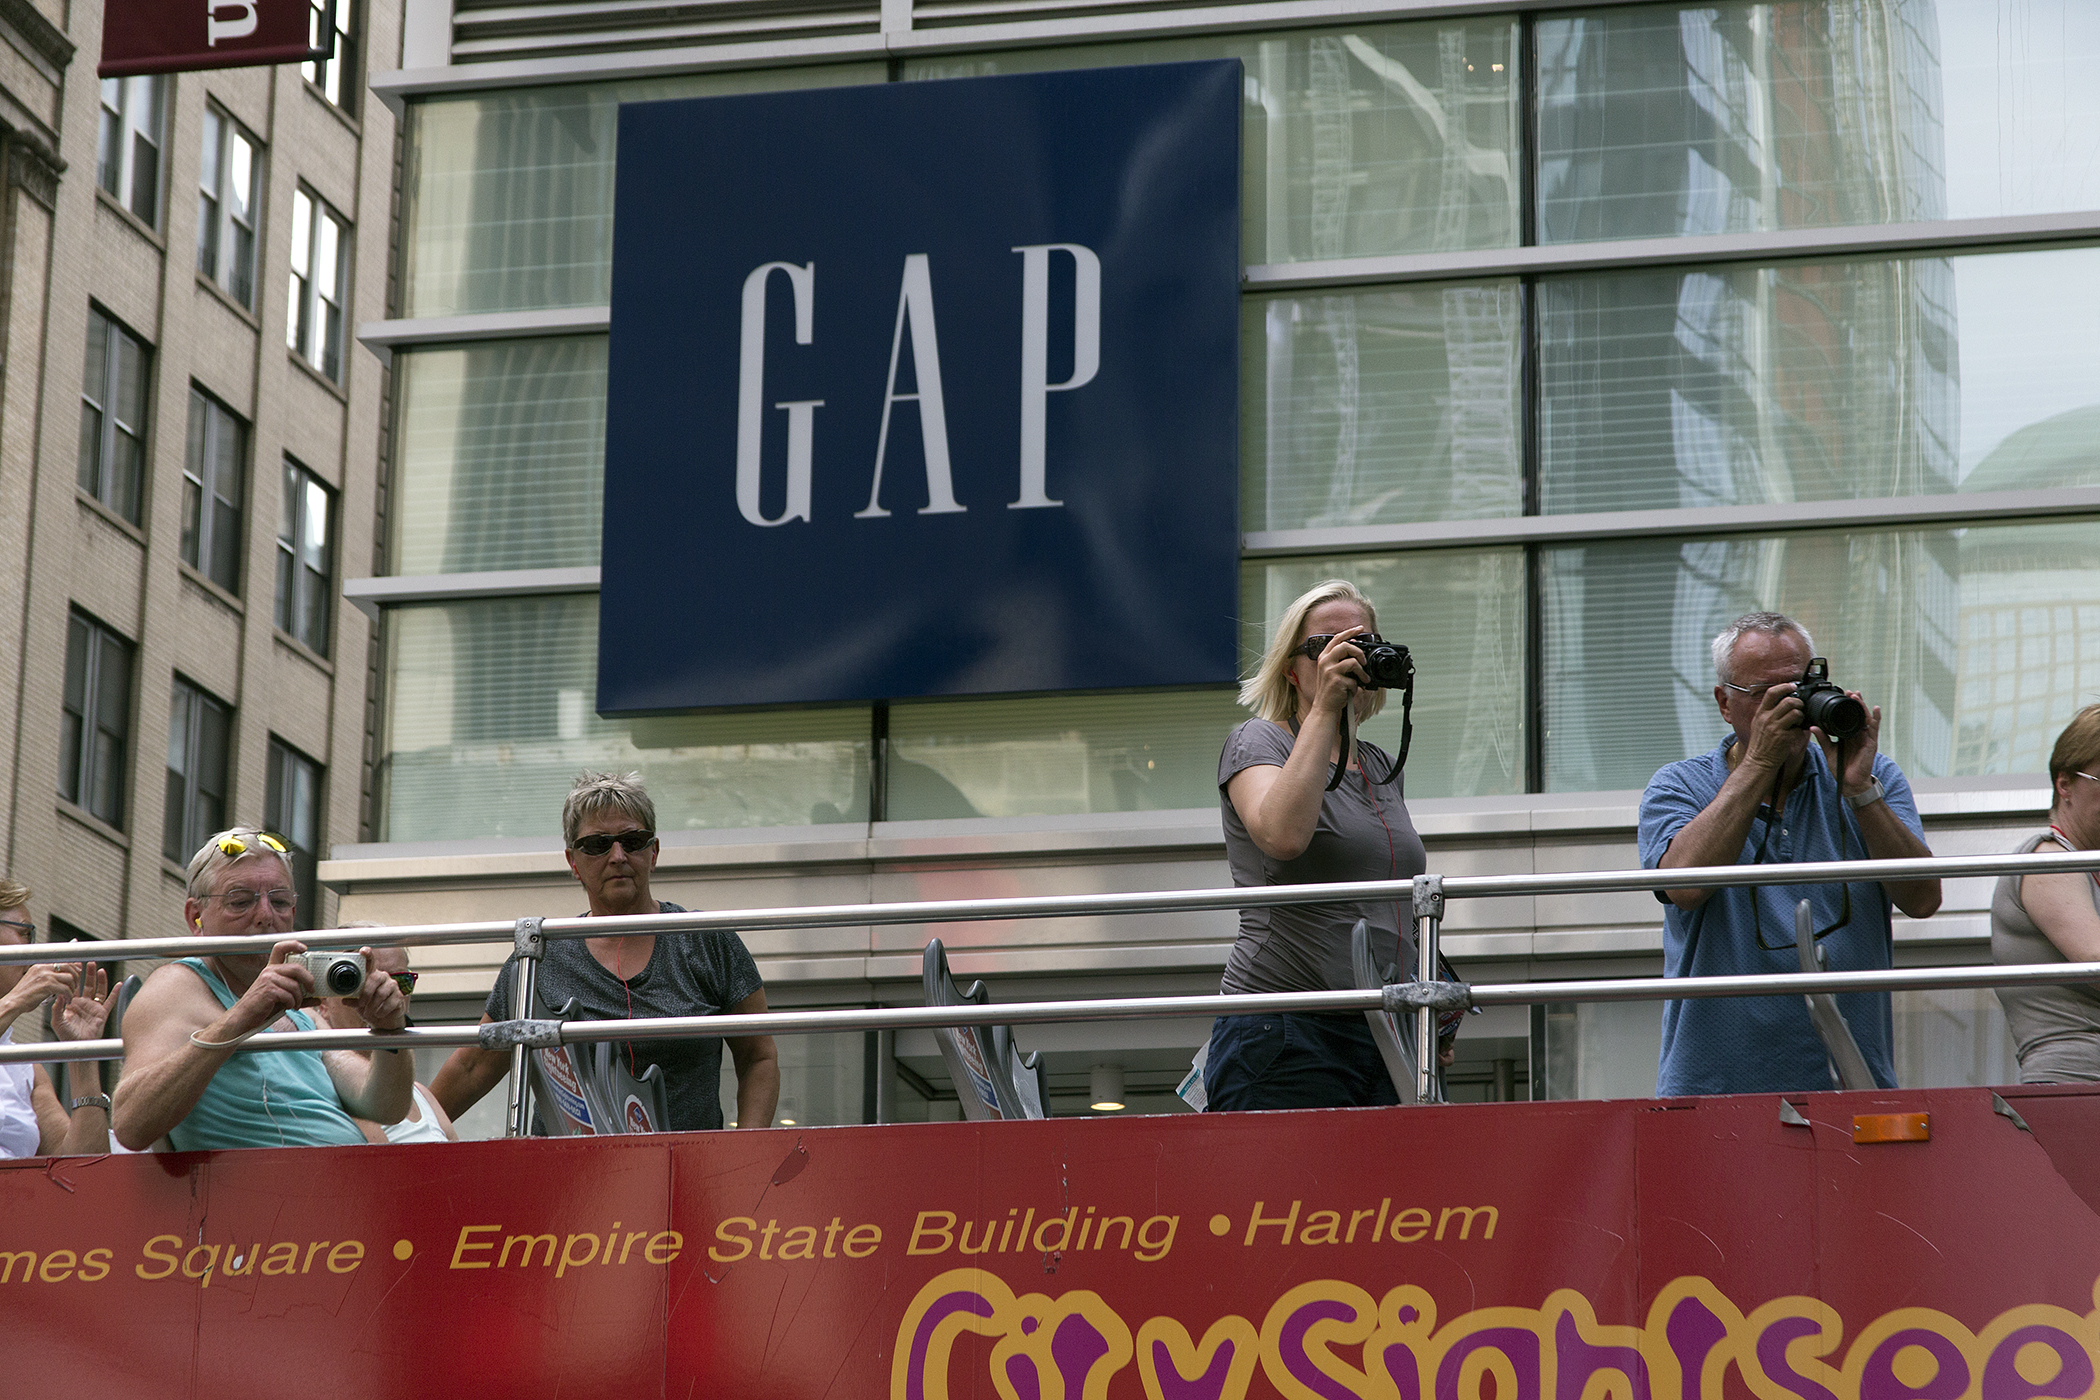 Tourists on a New York City sightseeing bus take photos in front of the GAP store, 400 Fulton Street.